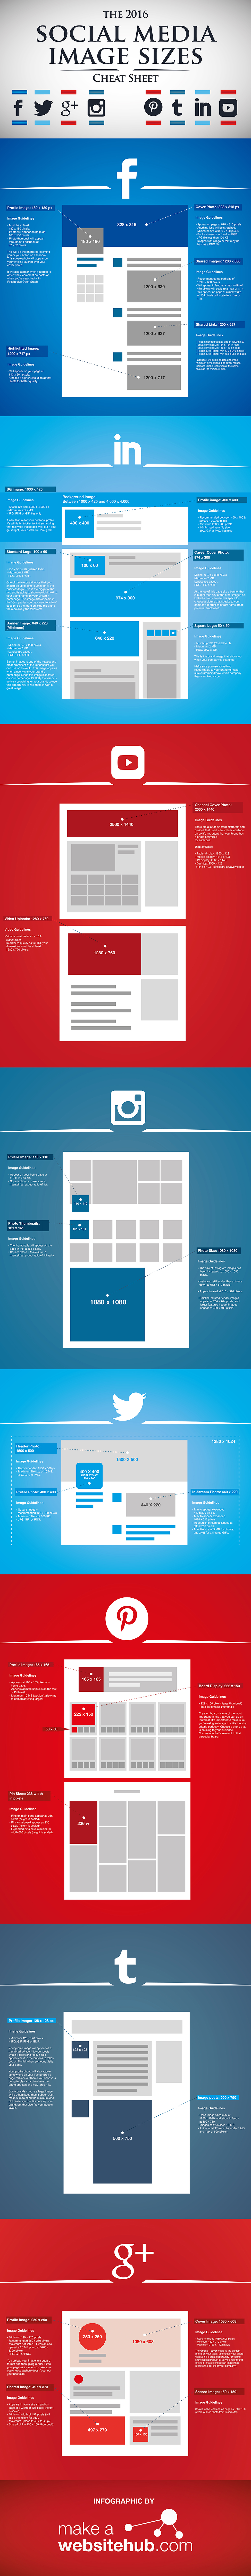 2017 Social Media Image Sizes Cheat Sheet - Make A Website Hub